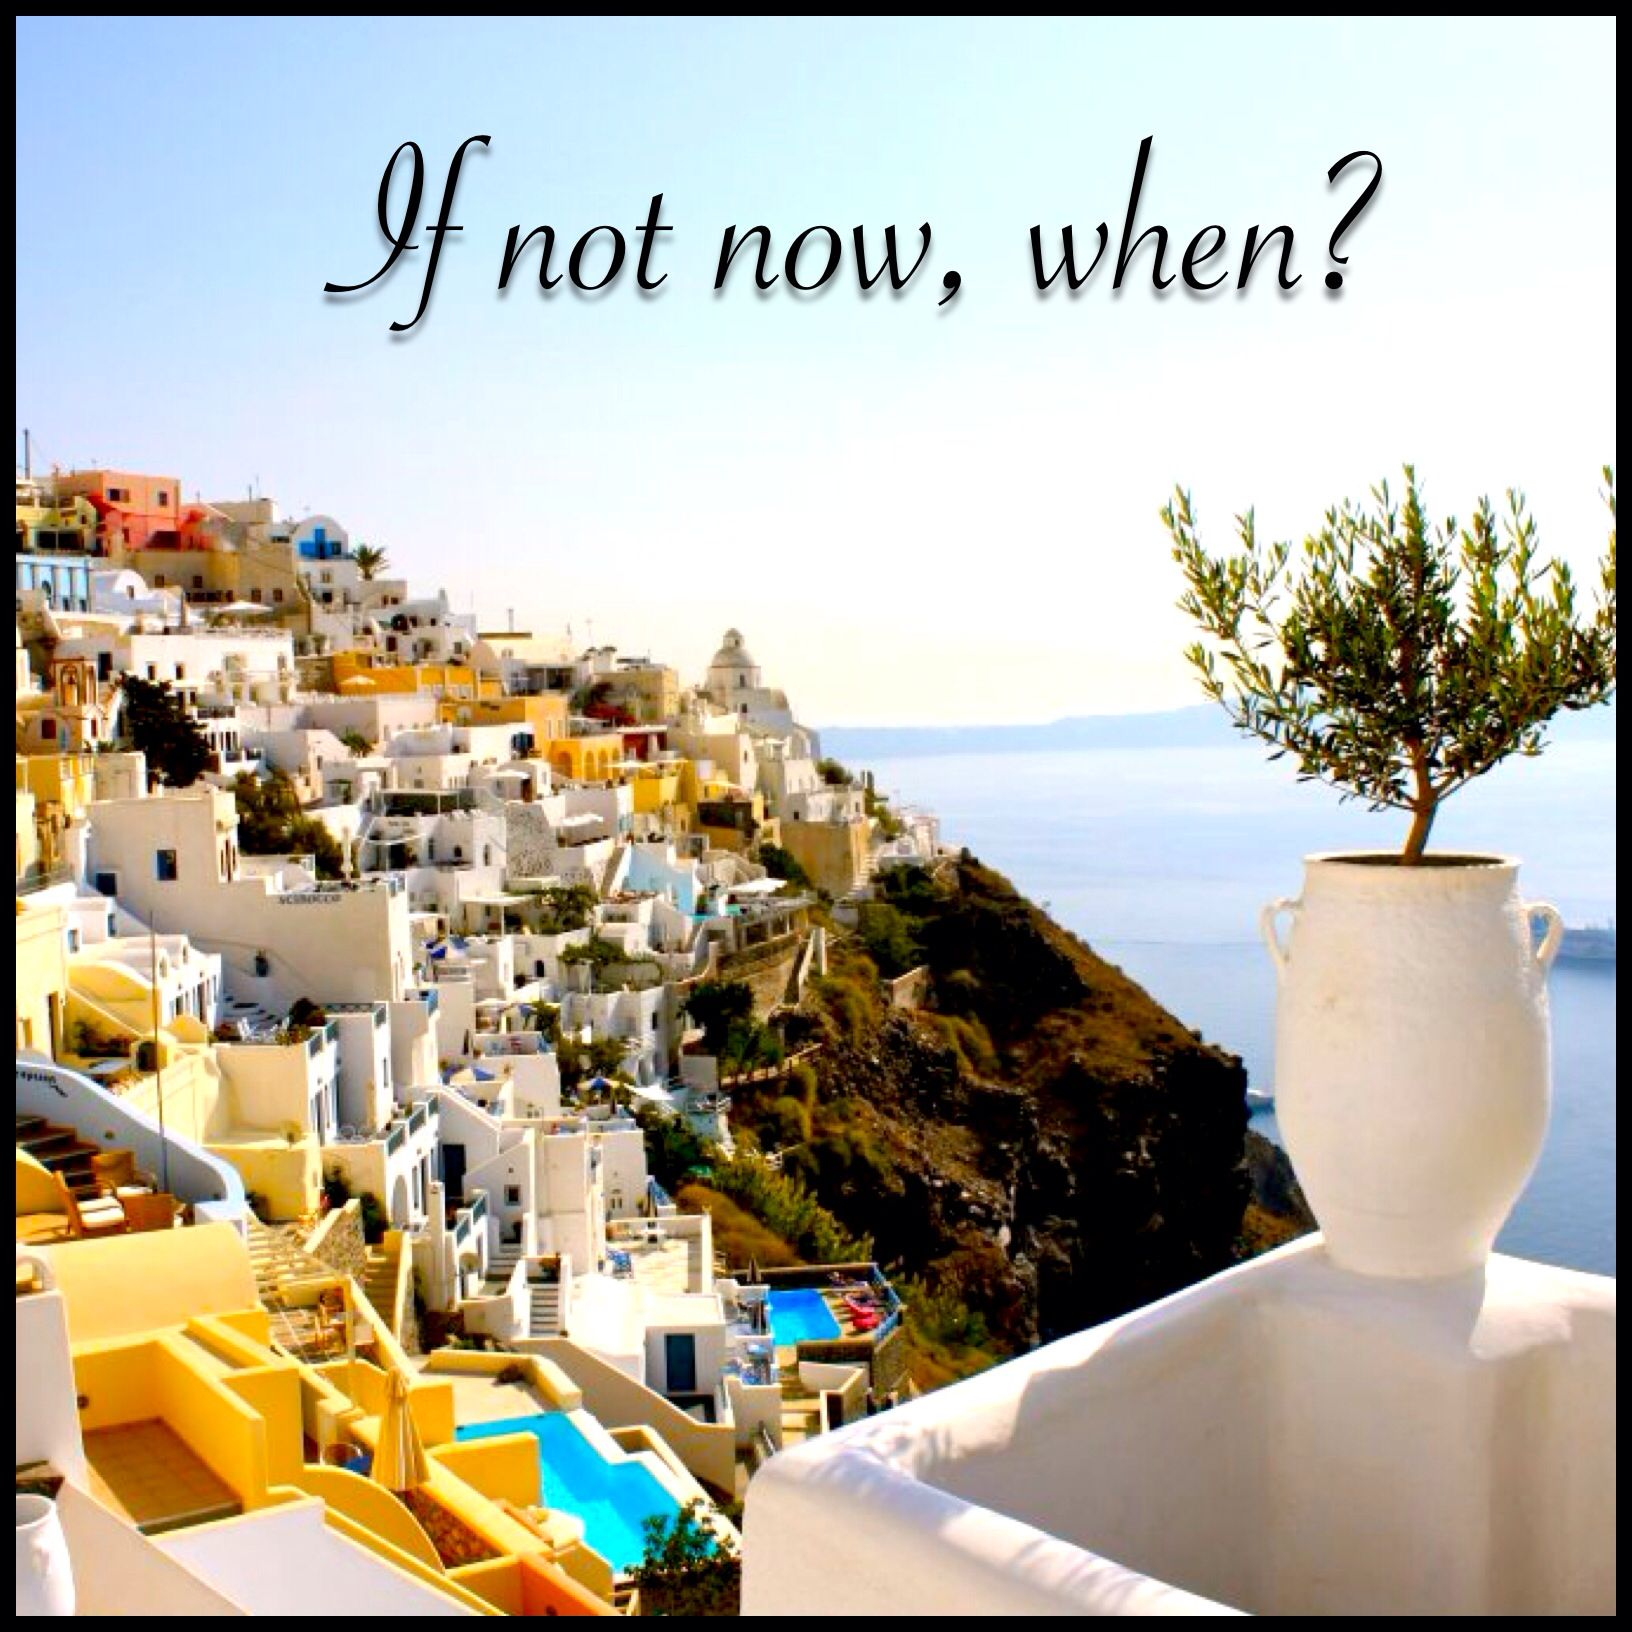 Santorini greece travel quote nothingstoppingus 2015 holiday meet and greet birmingham is a better option for secure off site car parking compare parking prices at birmingham to avail these deals at cheap rates kristyandbryce Choice Image